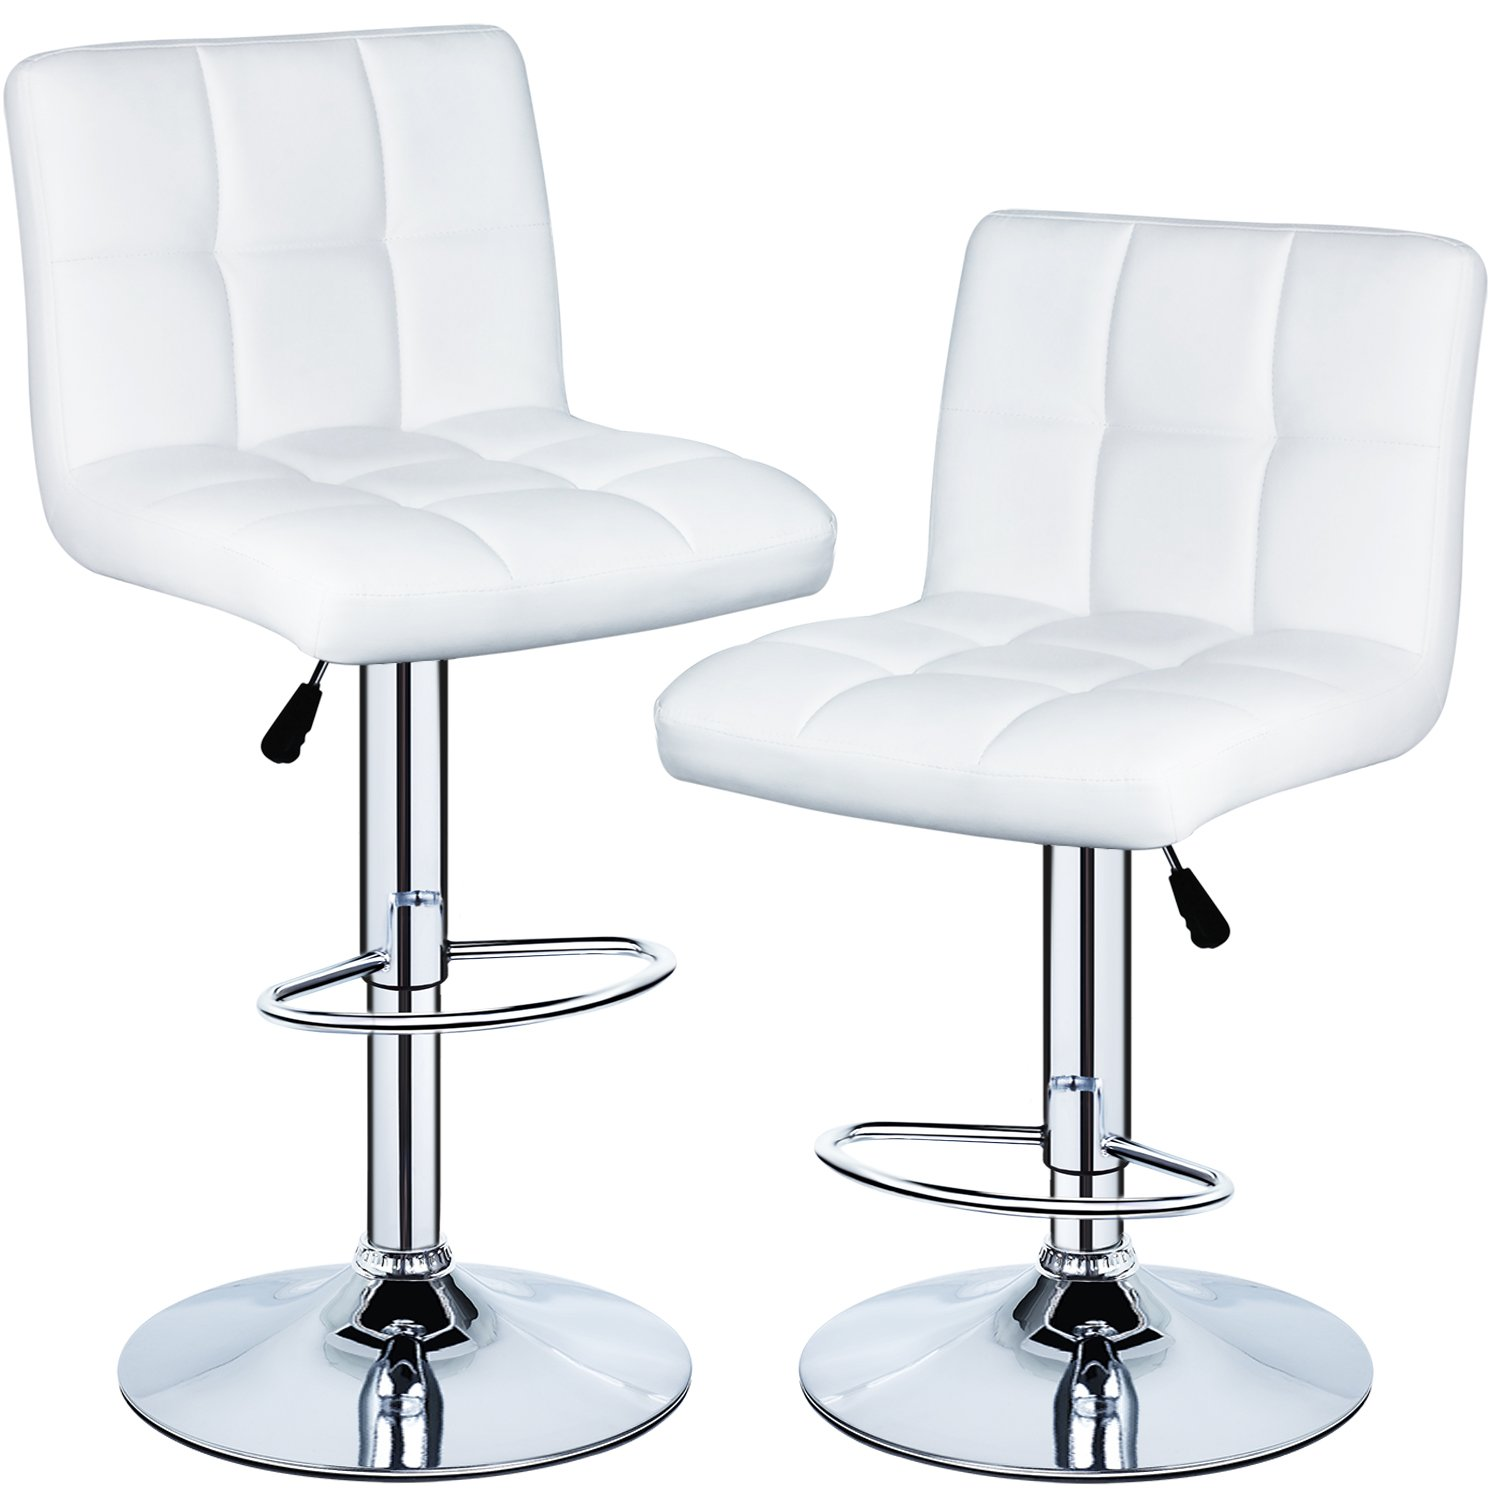 350 lbs Capacity Set of 2 PU Leather Hydraulic Swivel Gas Lift Height Adjustable Bar Stool White